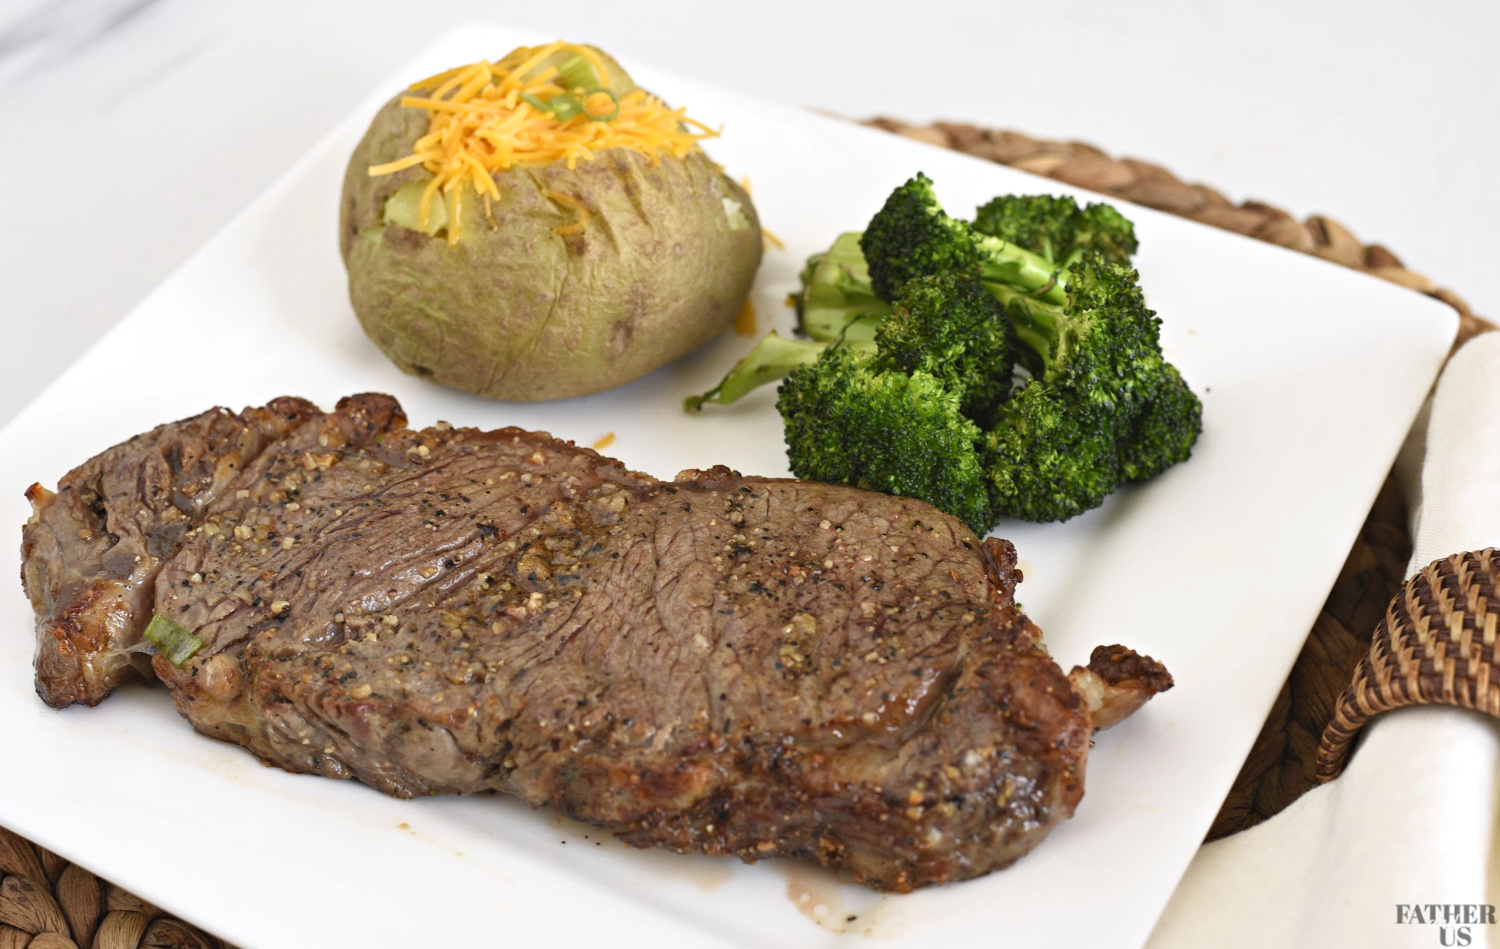 Air Fryer Steak Recipe on a plate with a baked potato and broccoli.